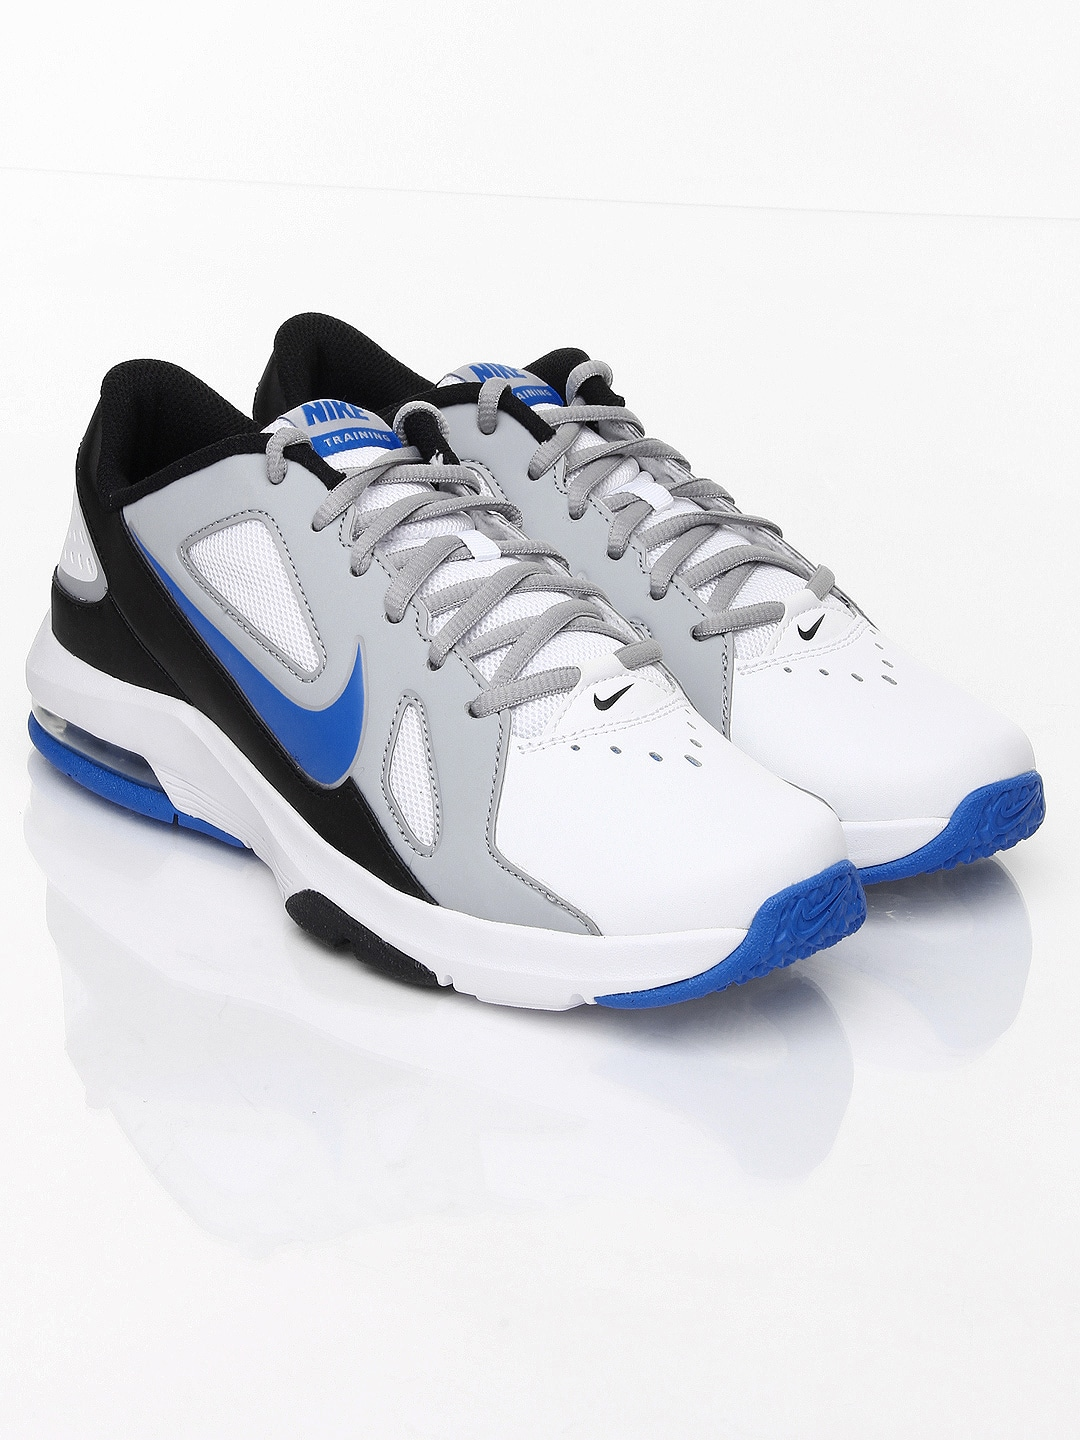 5f8a952acf62 Nike 643174-102 Men White And Grey Air Max Crusher Sports Shoes- Price in  India